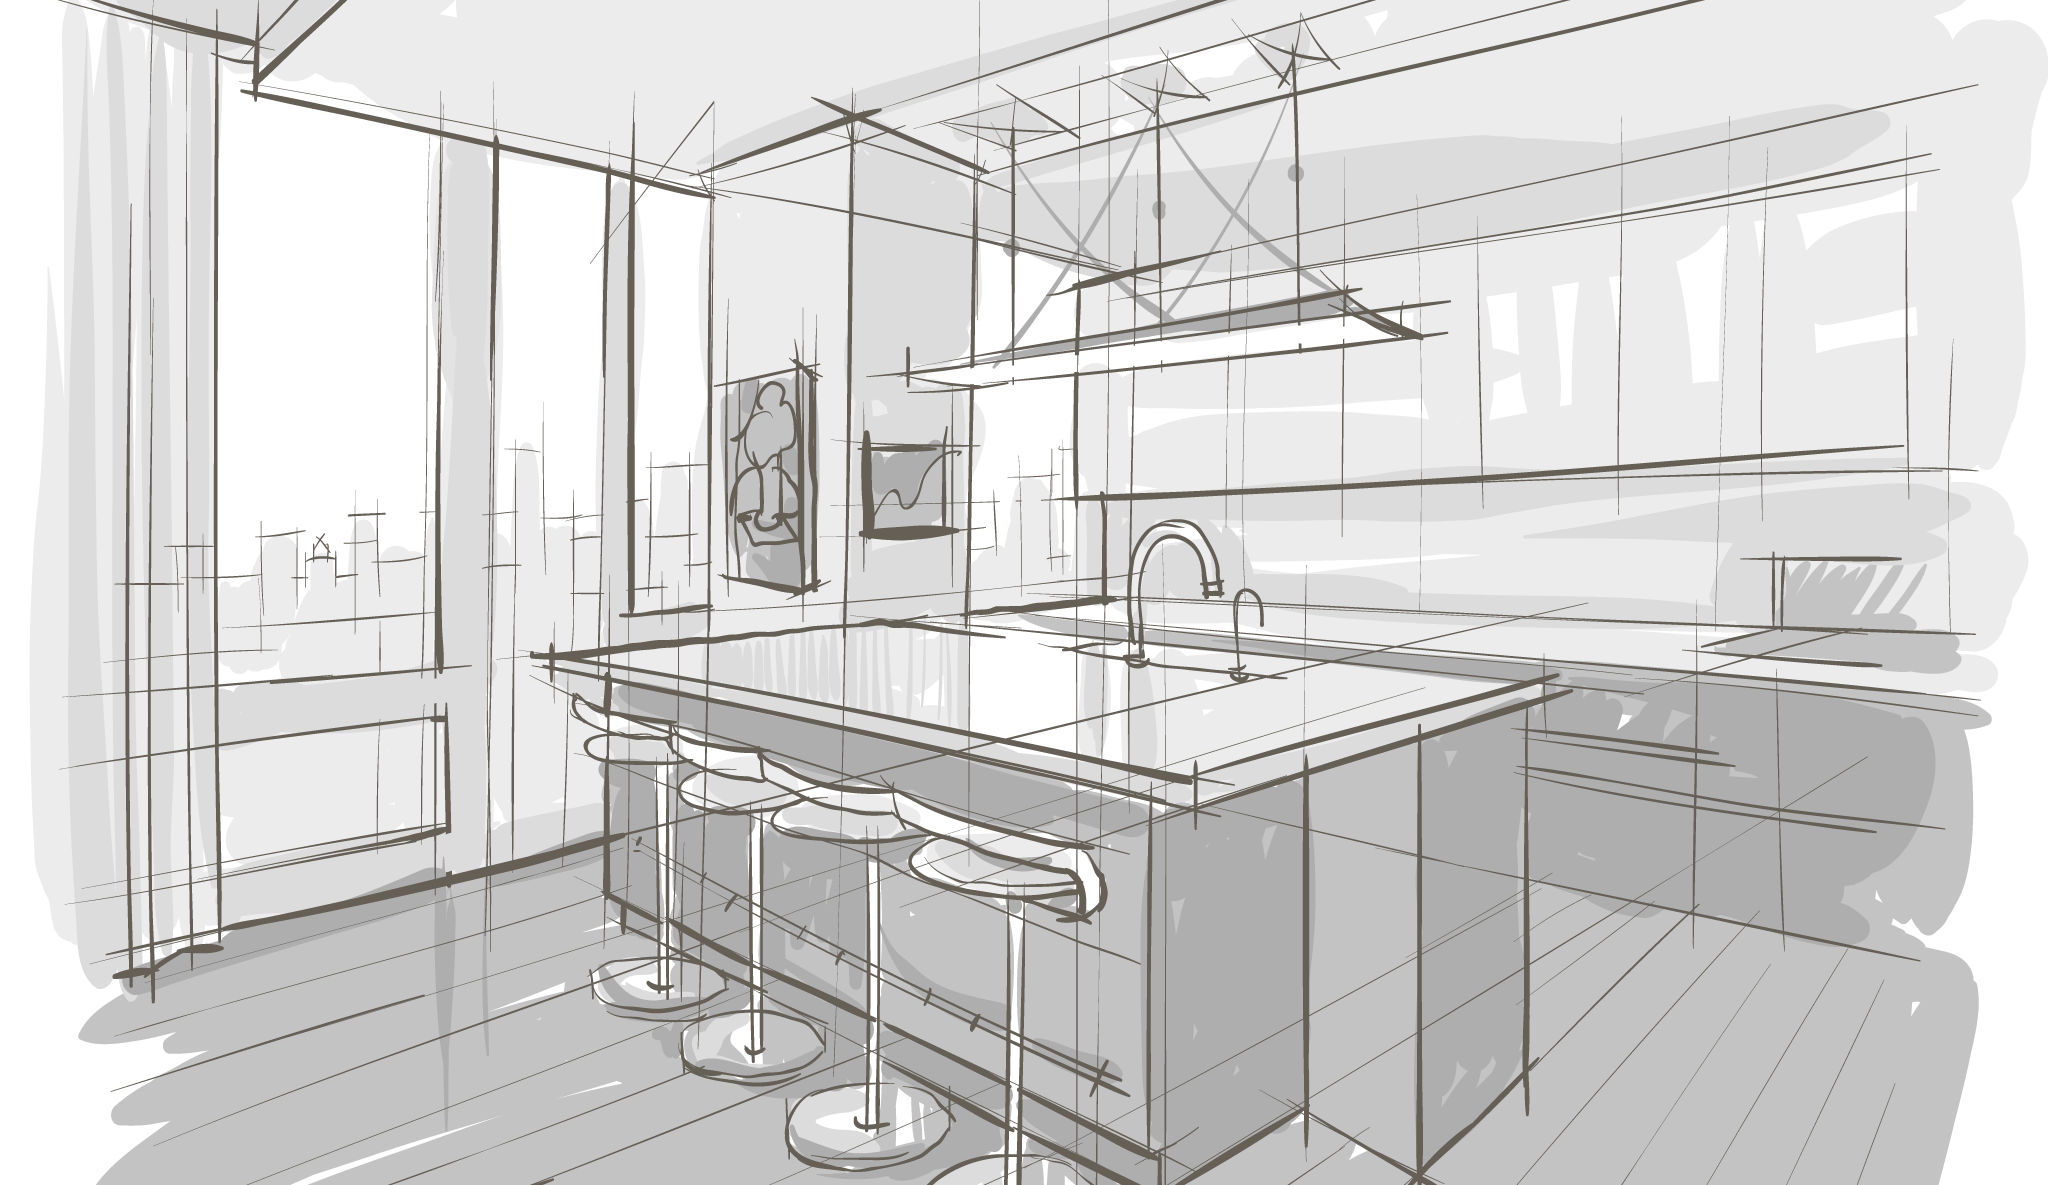 Spatial Drawing Home Interior Transparent Png Clipart Free